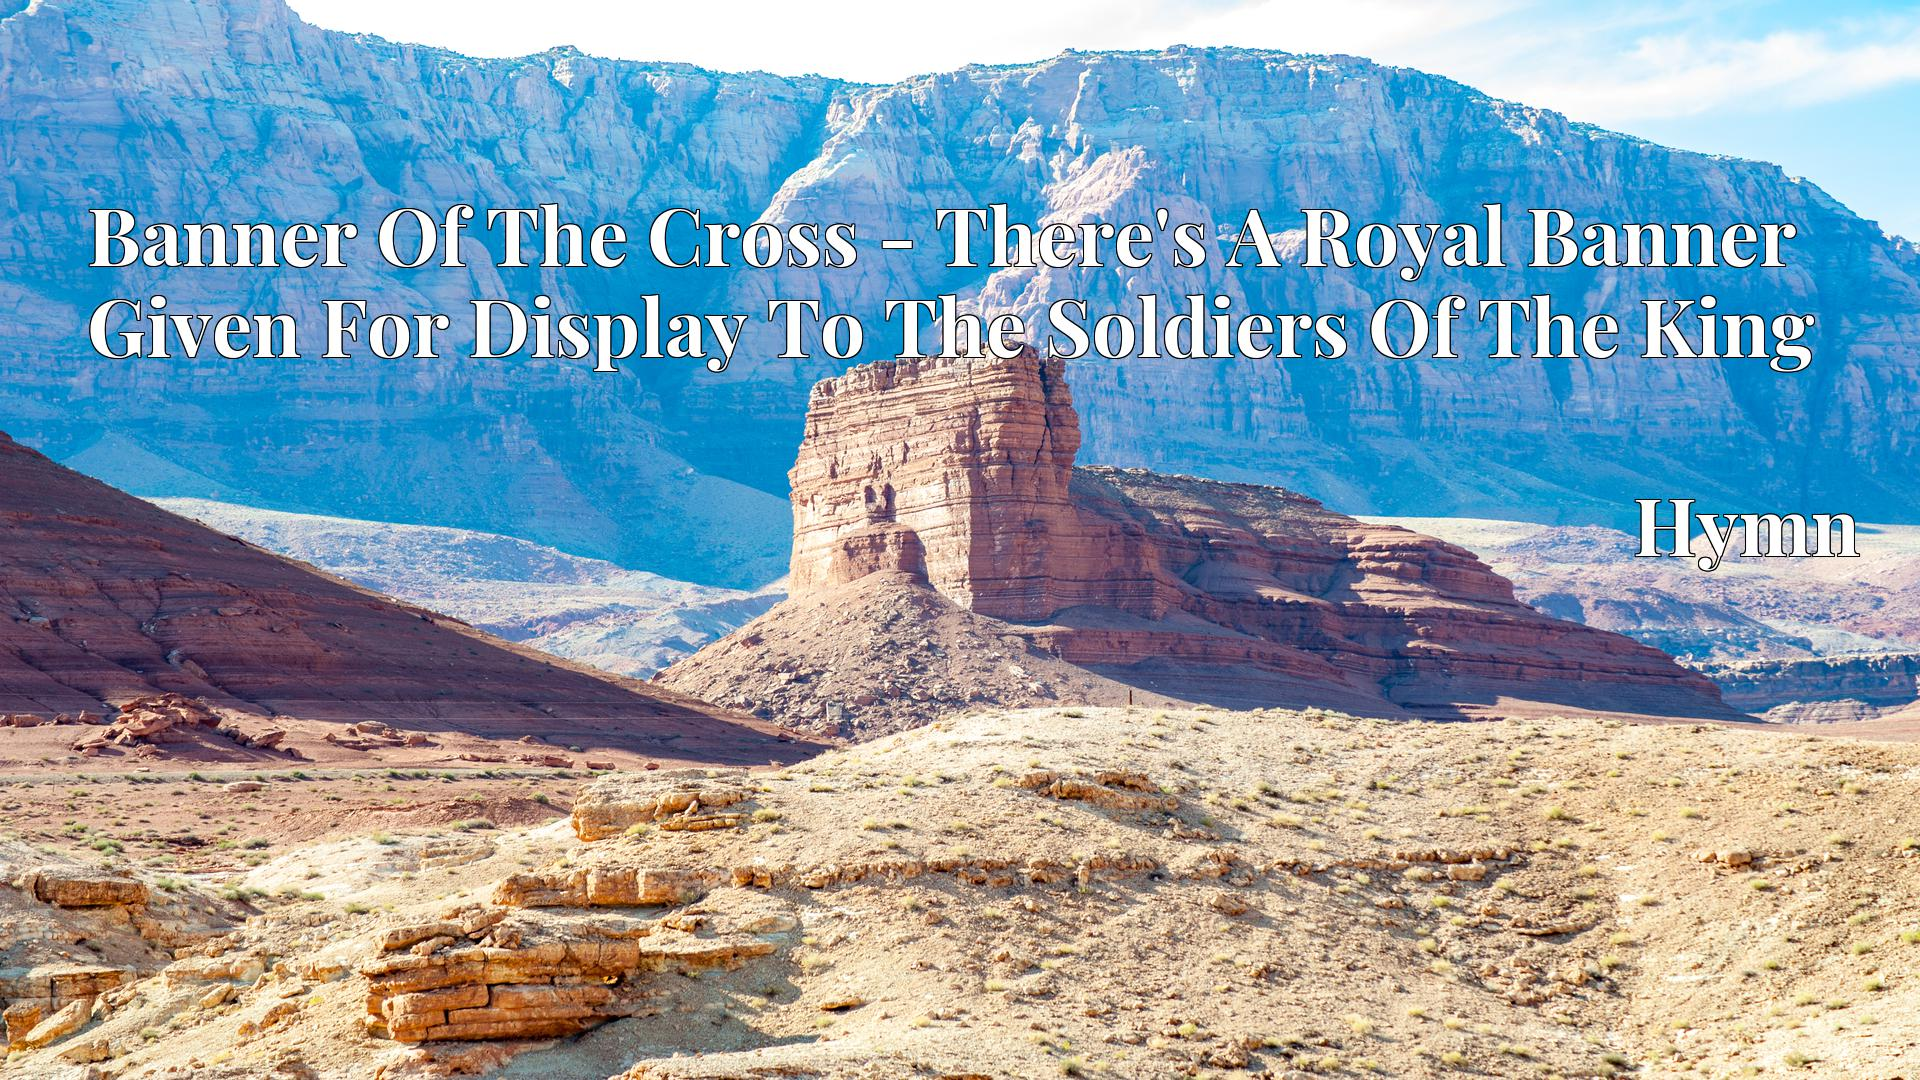 Banner Of The Cross - There's A Royal Banner Given For Display To The Soldiers Of The King - Hymn